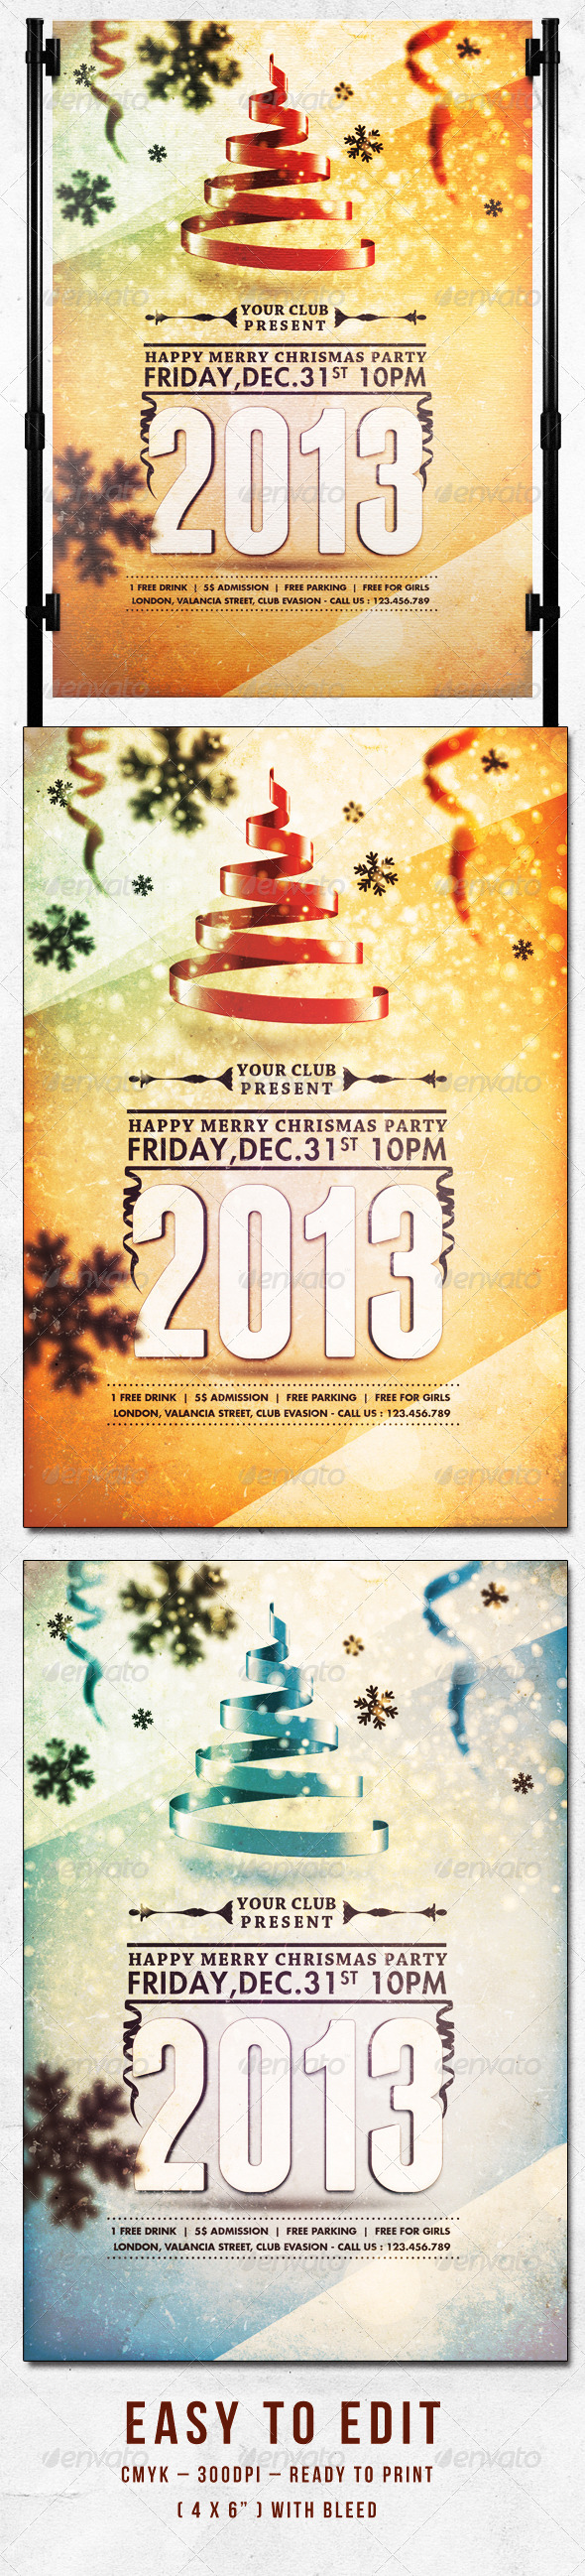 Happy Merry Christmas Party Flyer Template - Clubs & Parties Events